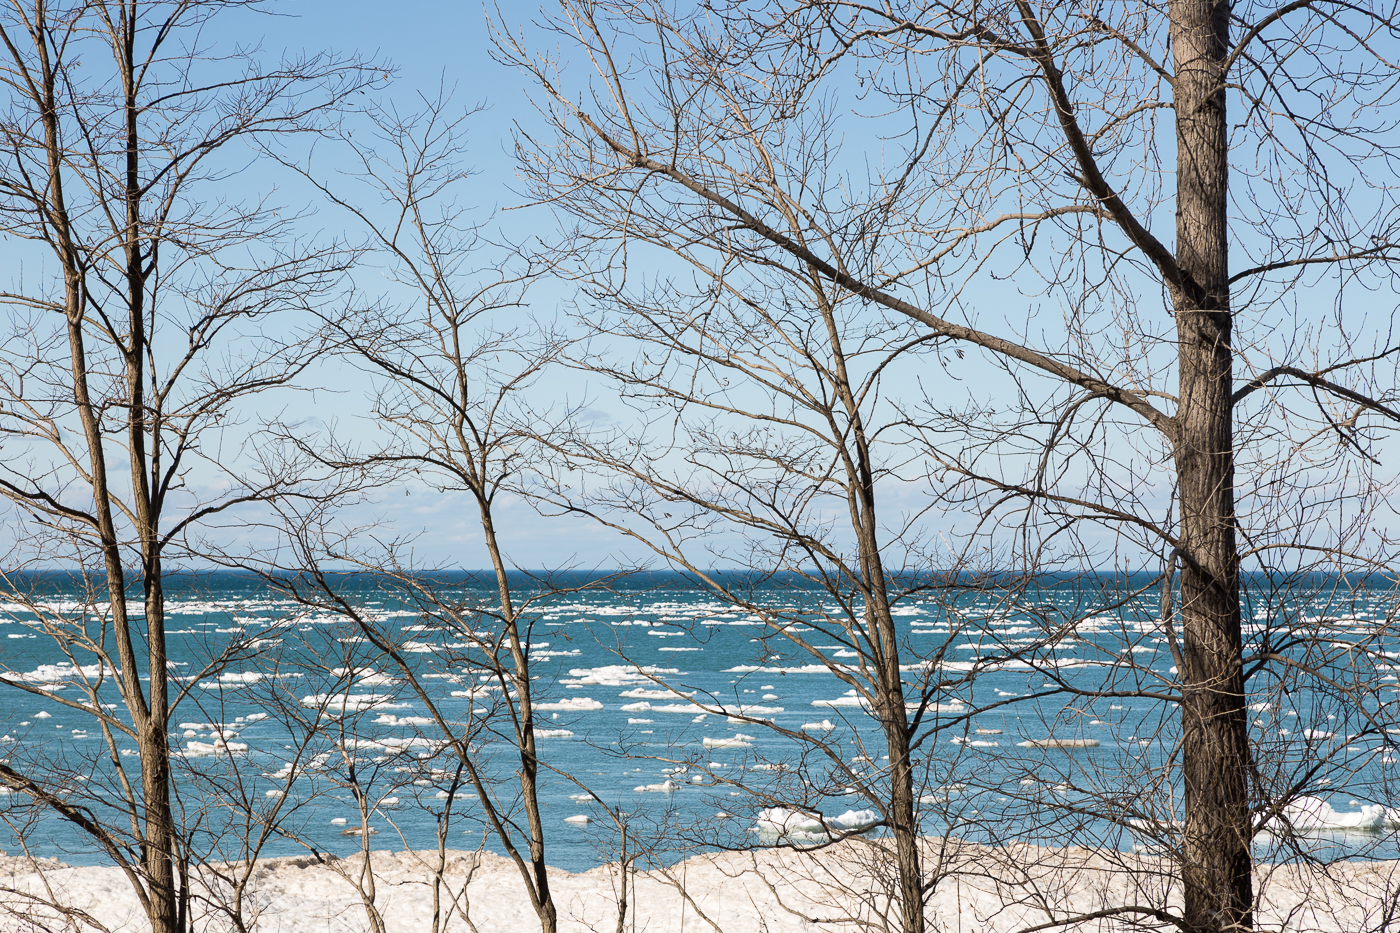 Lake Huron through the Trees